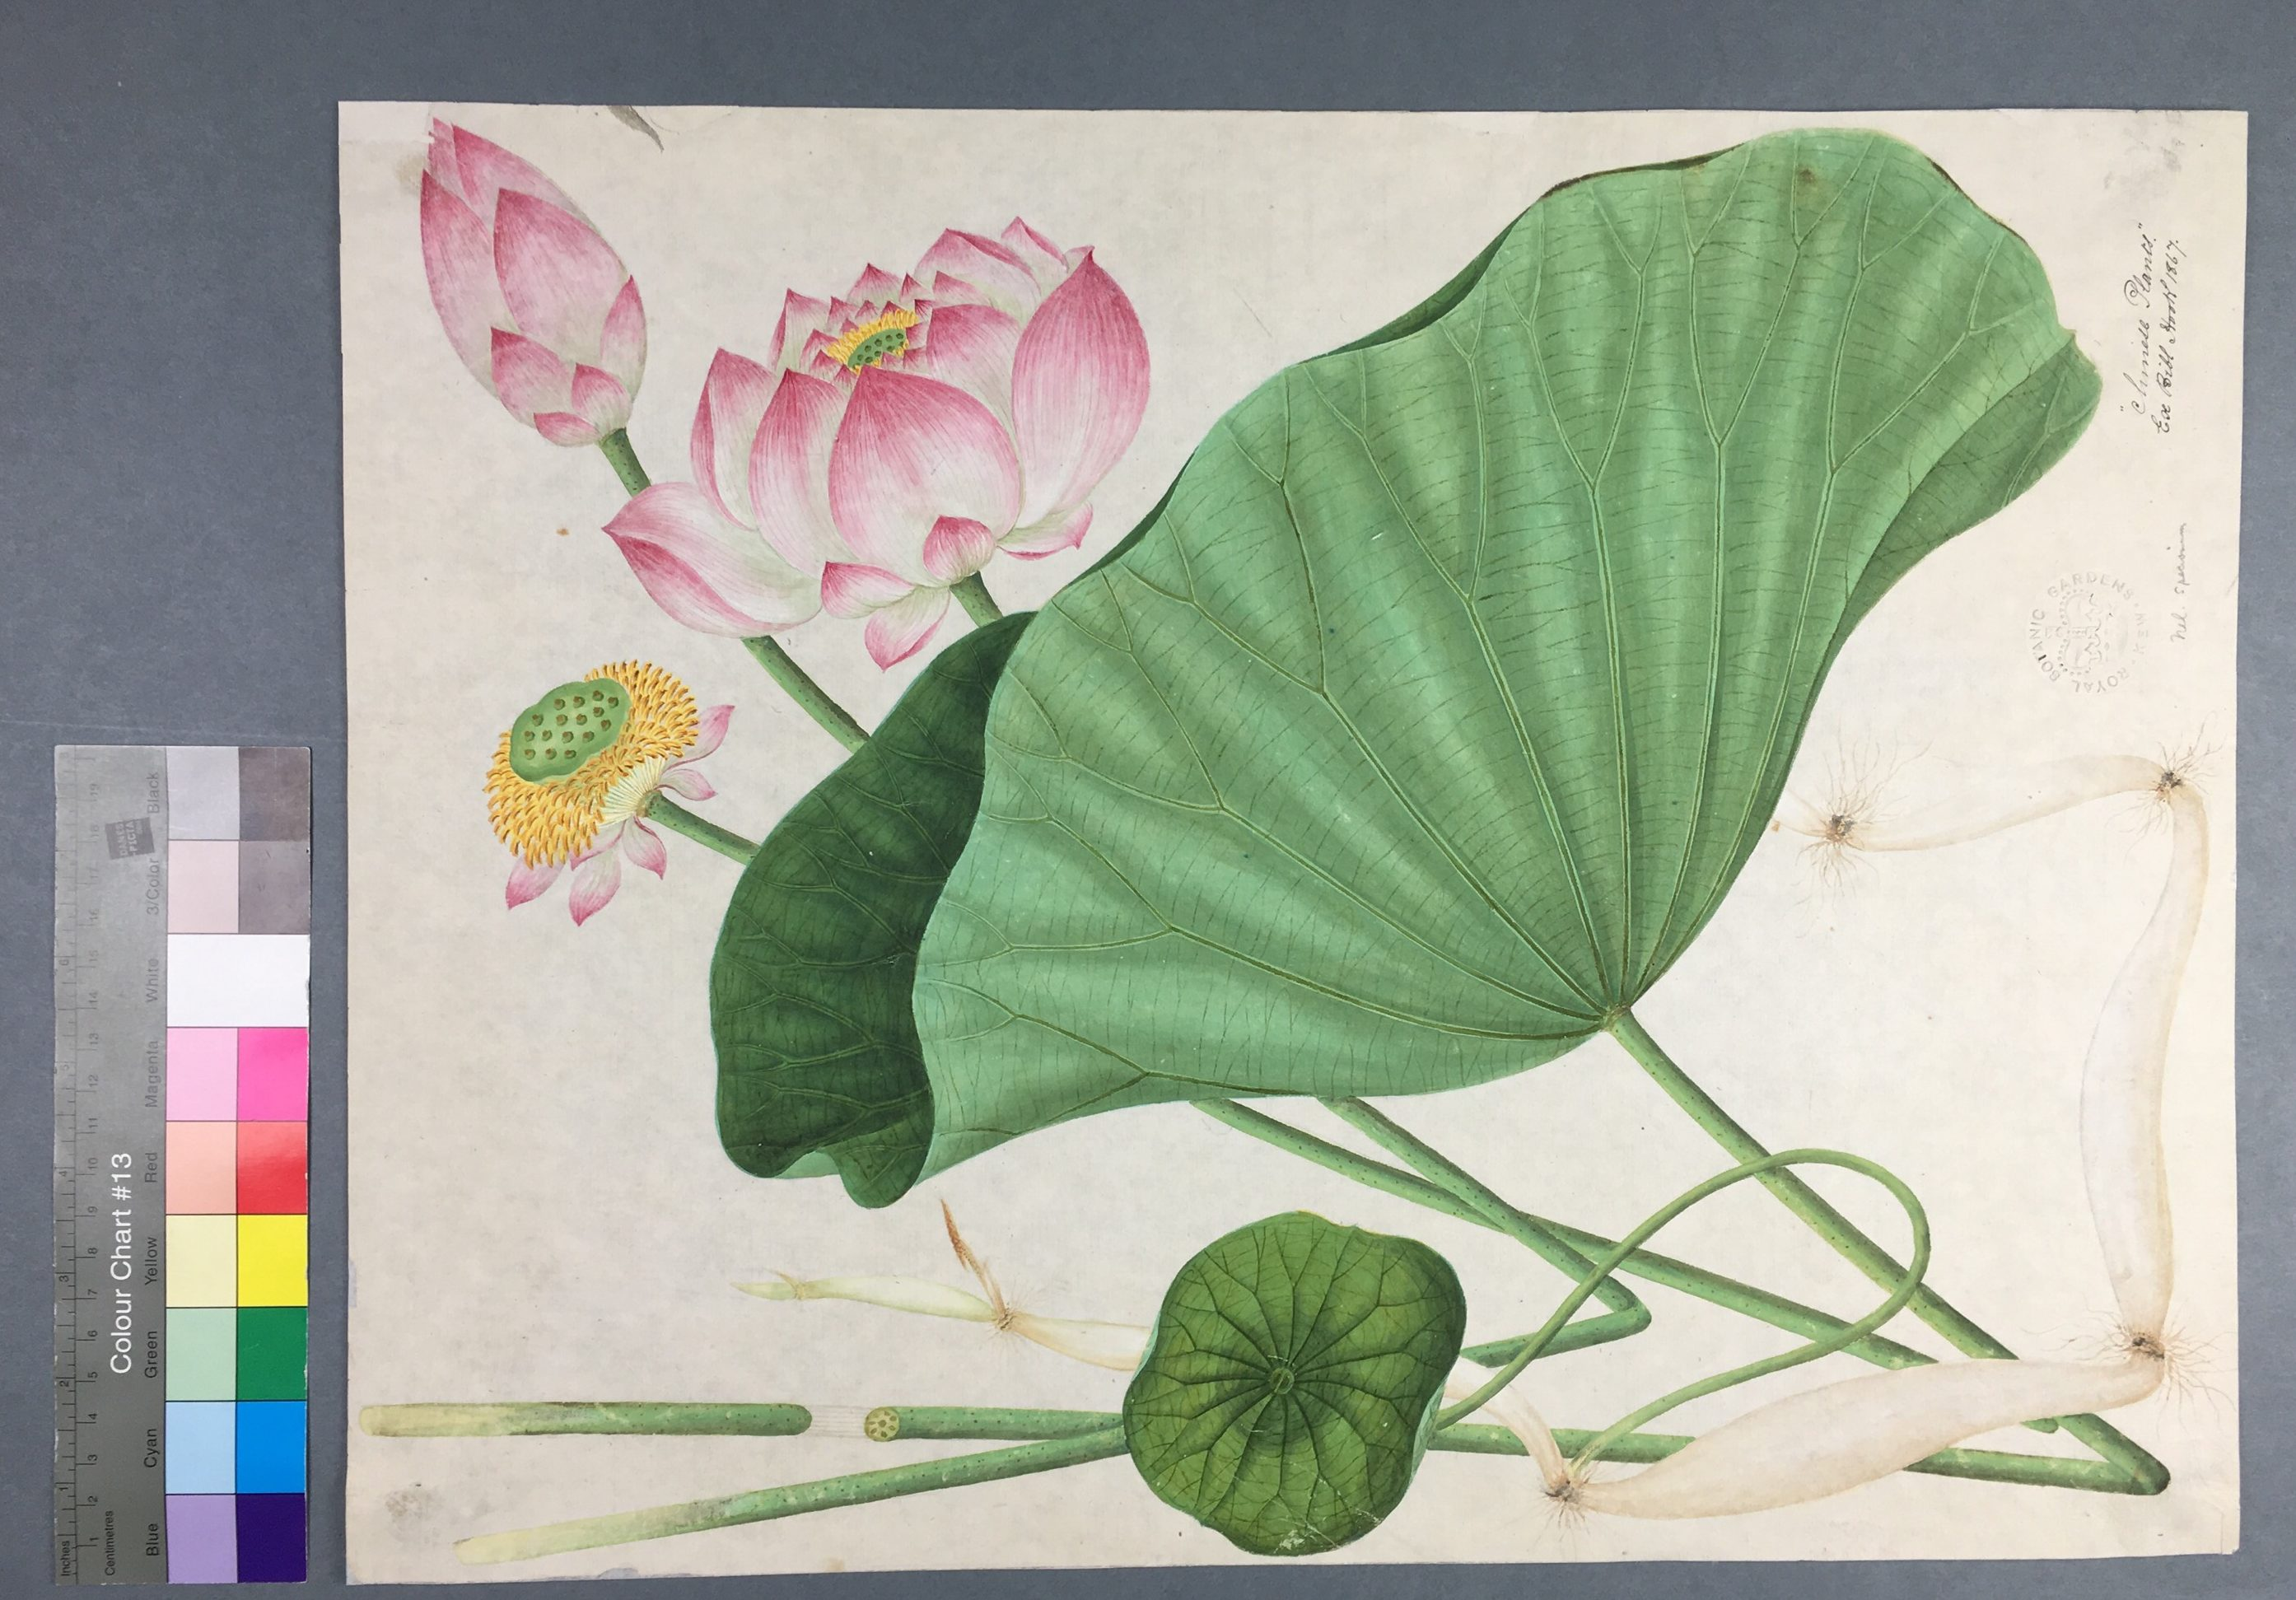 Lotus flower painting from The Royal Botanical Gardens Kew, after treatment